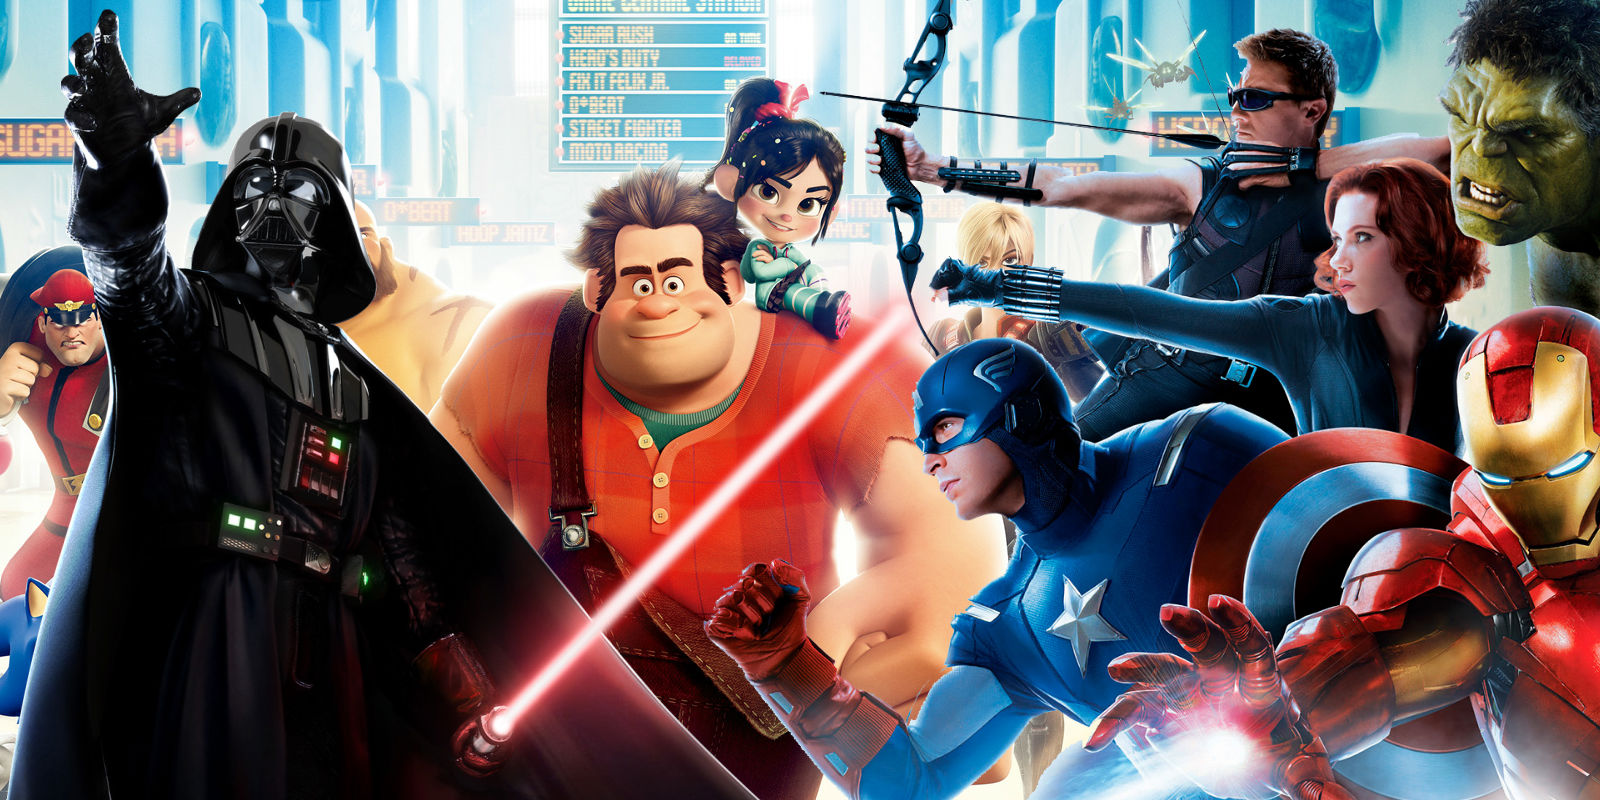 Wreck-It Ralph 2 Star Wars Avengers